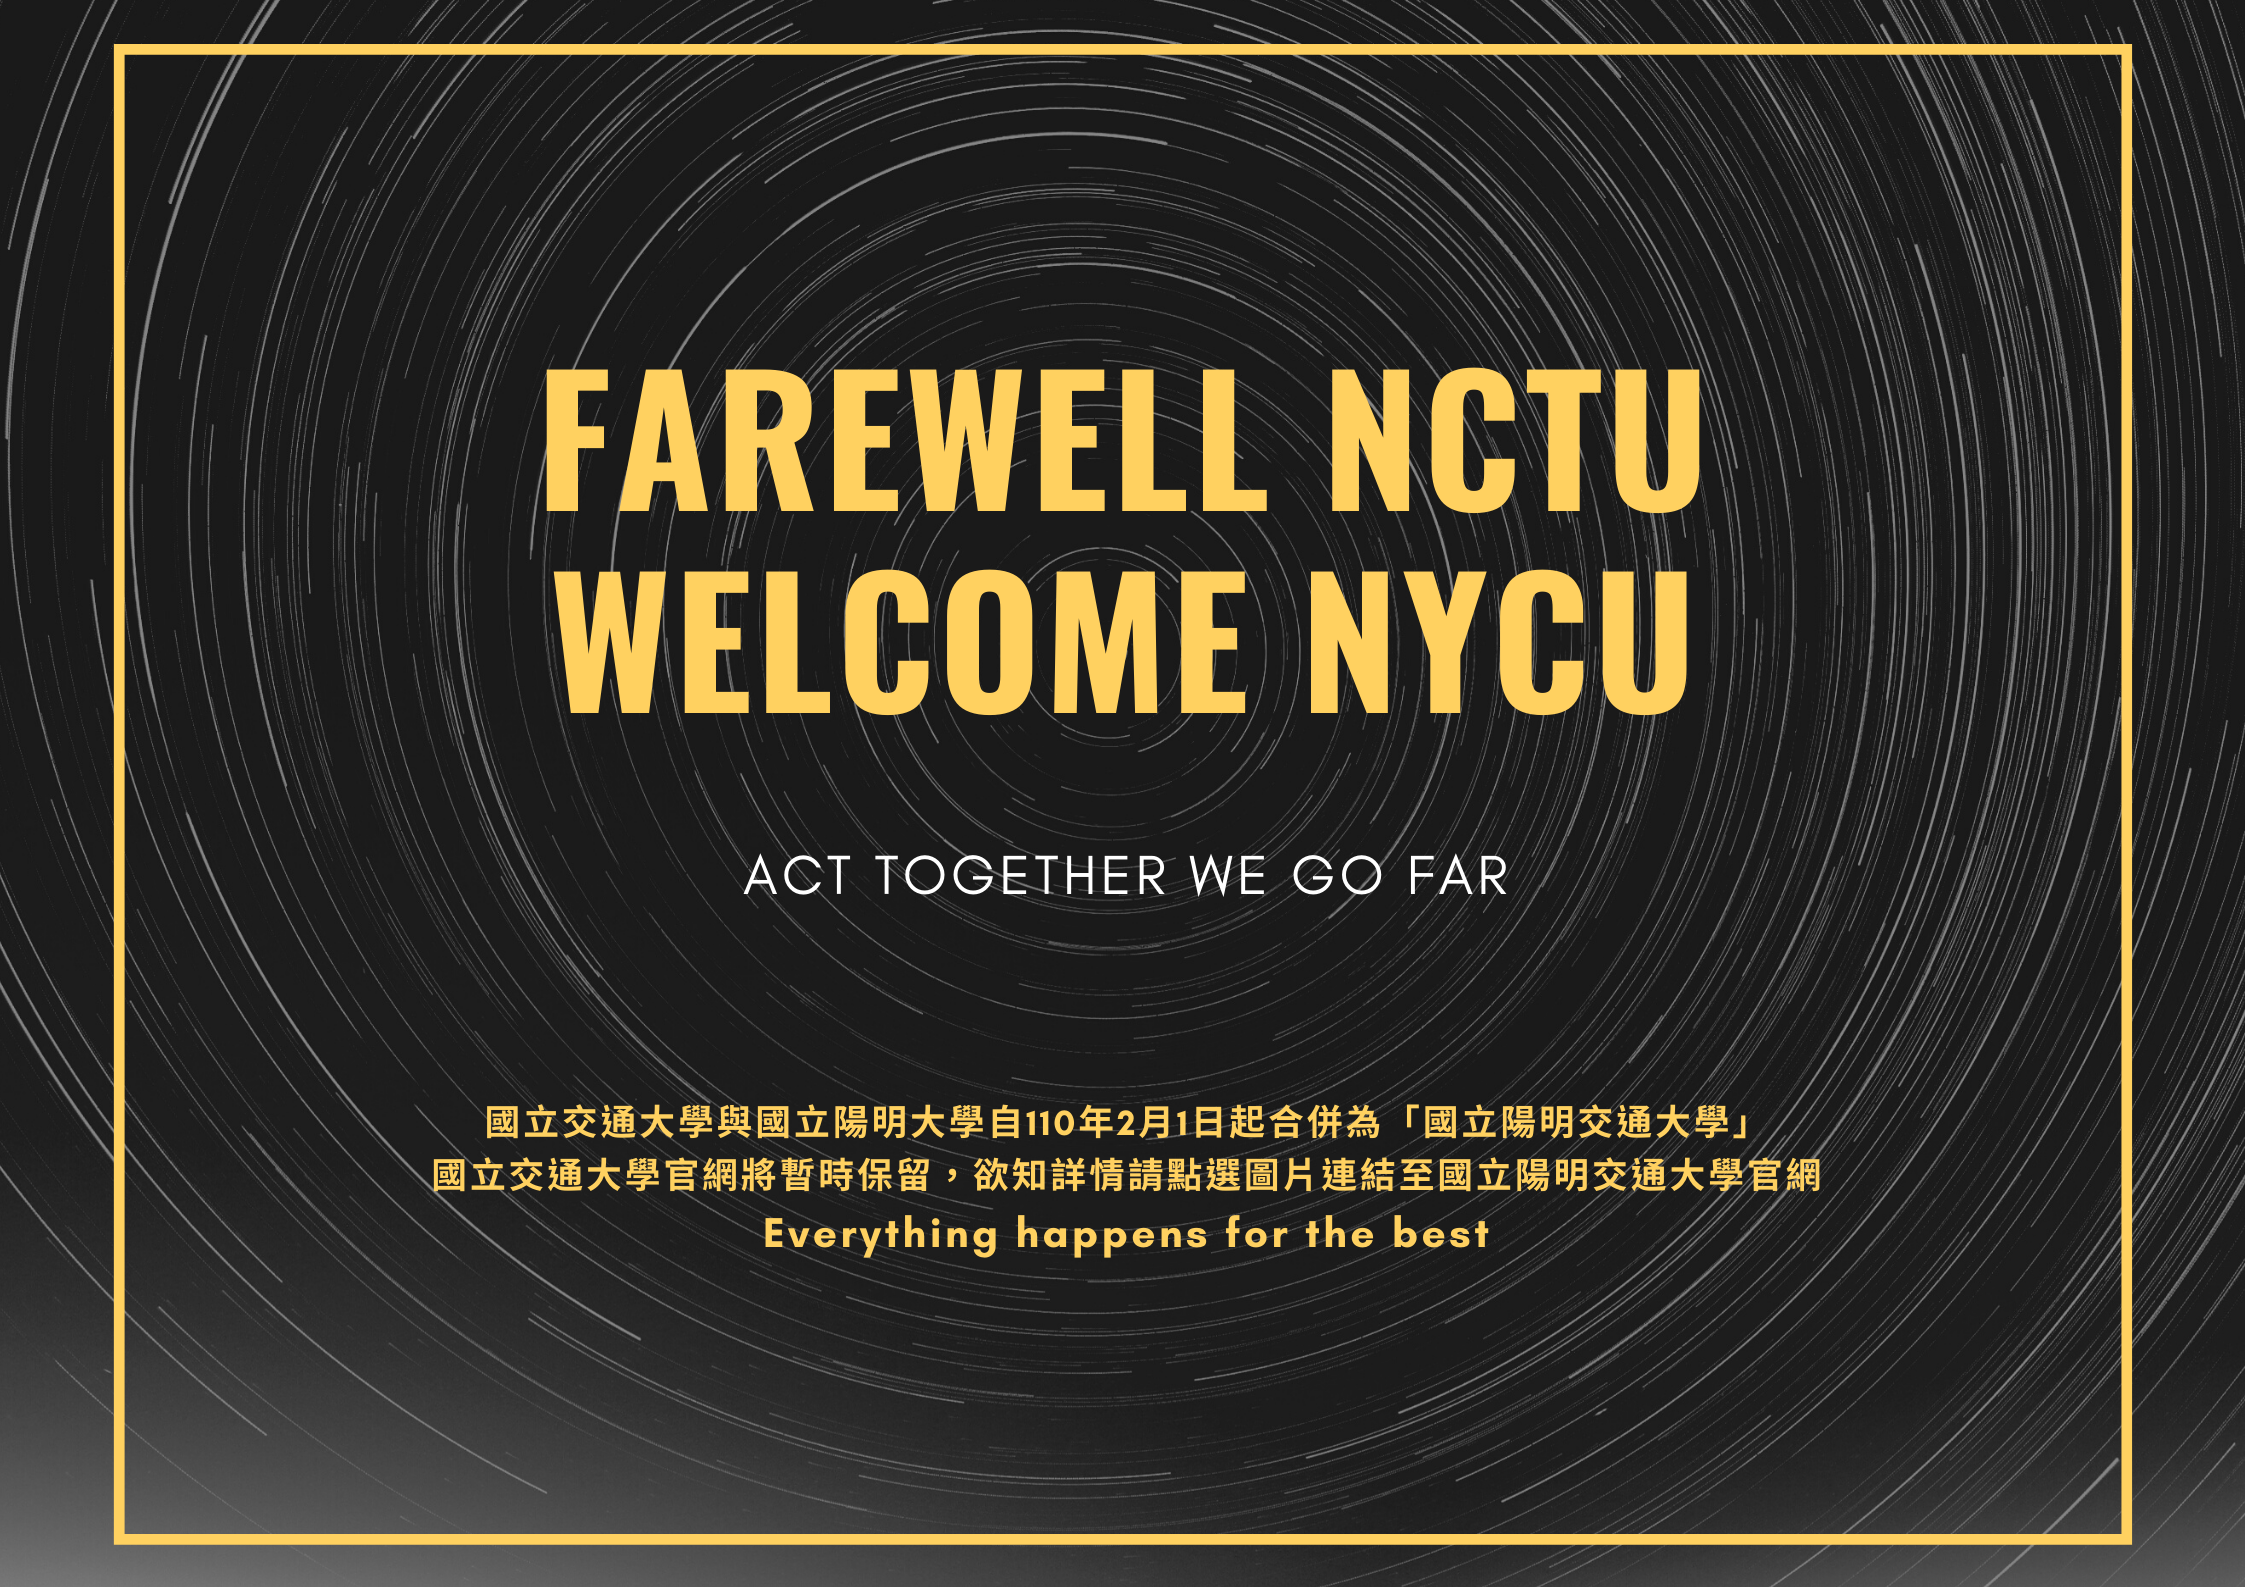 Farewell NCTU Welcome NYCU